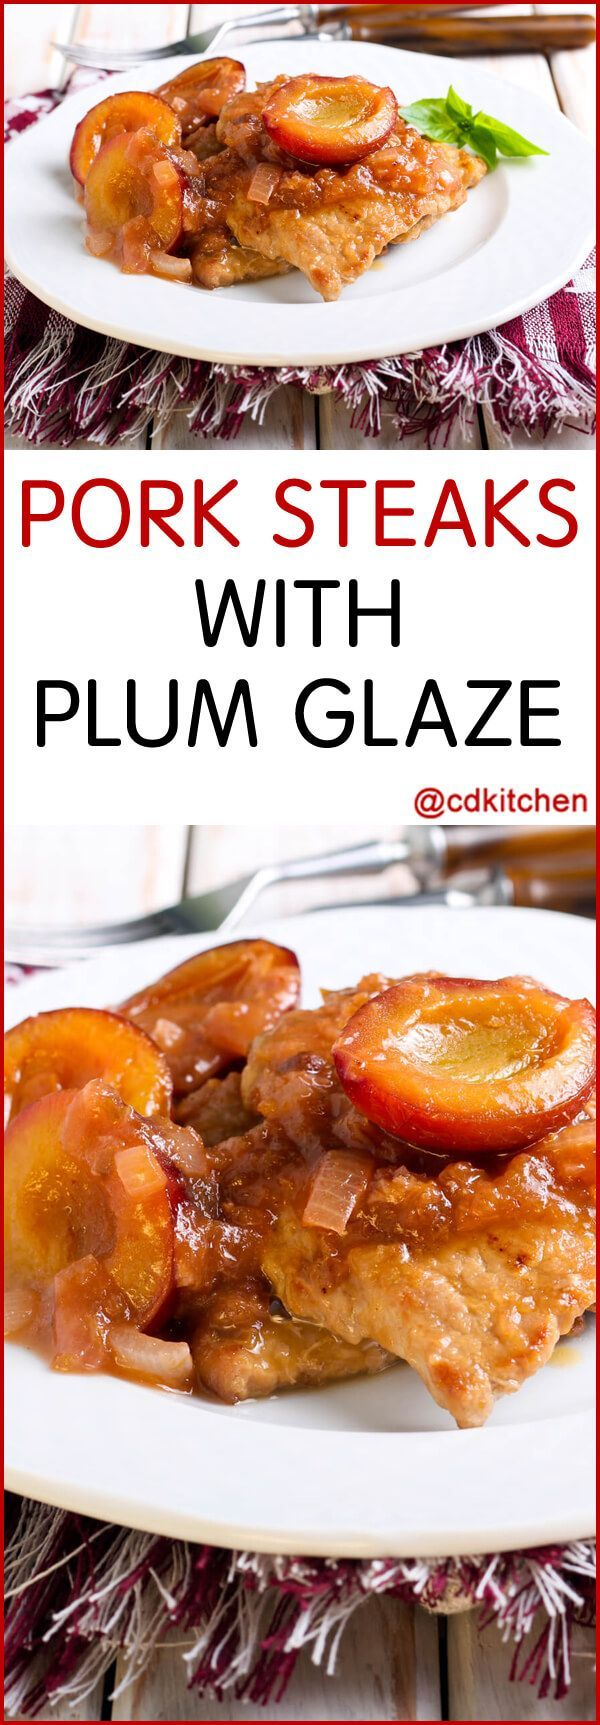 """Pork Steaks With Plum Glaze - This different way of cooking pork steak starts with lean pork tenderloin that is cut into """"steaks"""". But the real appeal is the grilled plums and onion-plum sauce glaze.